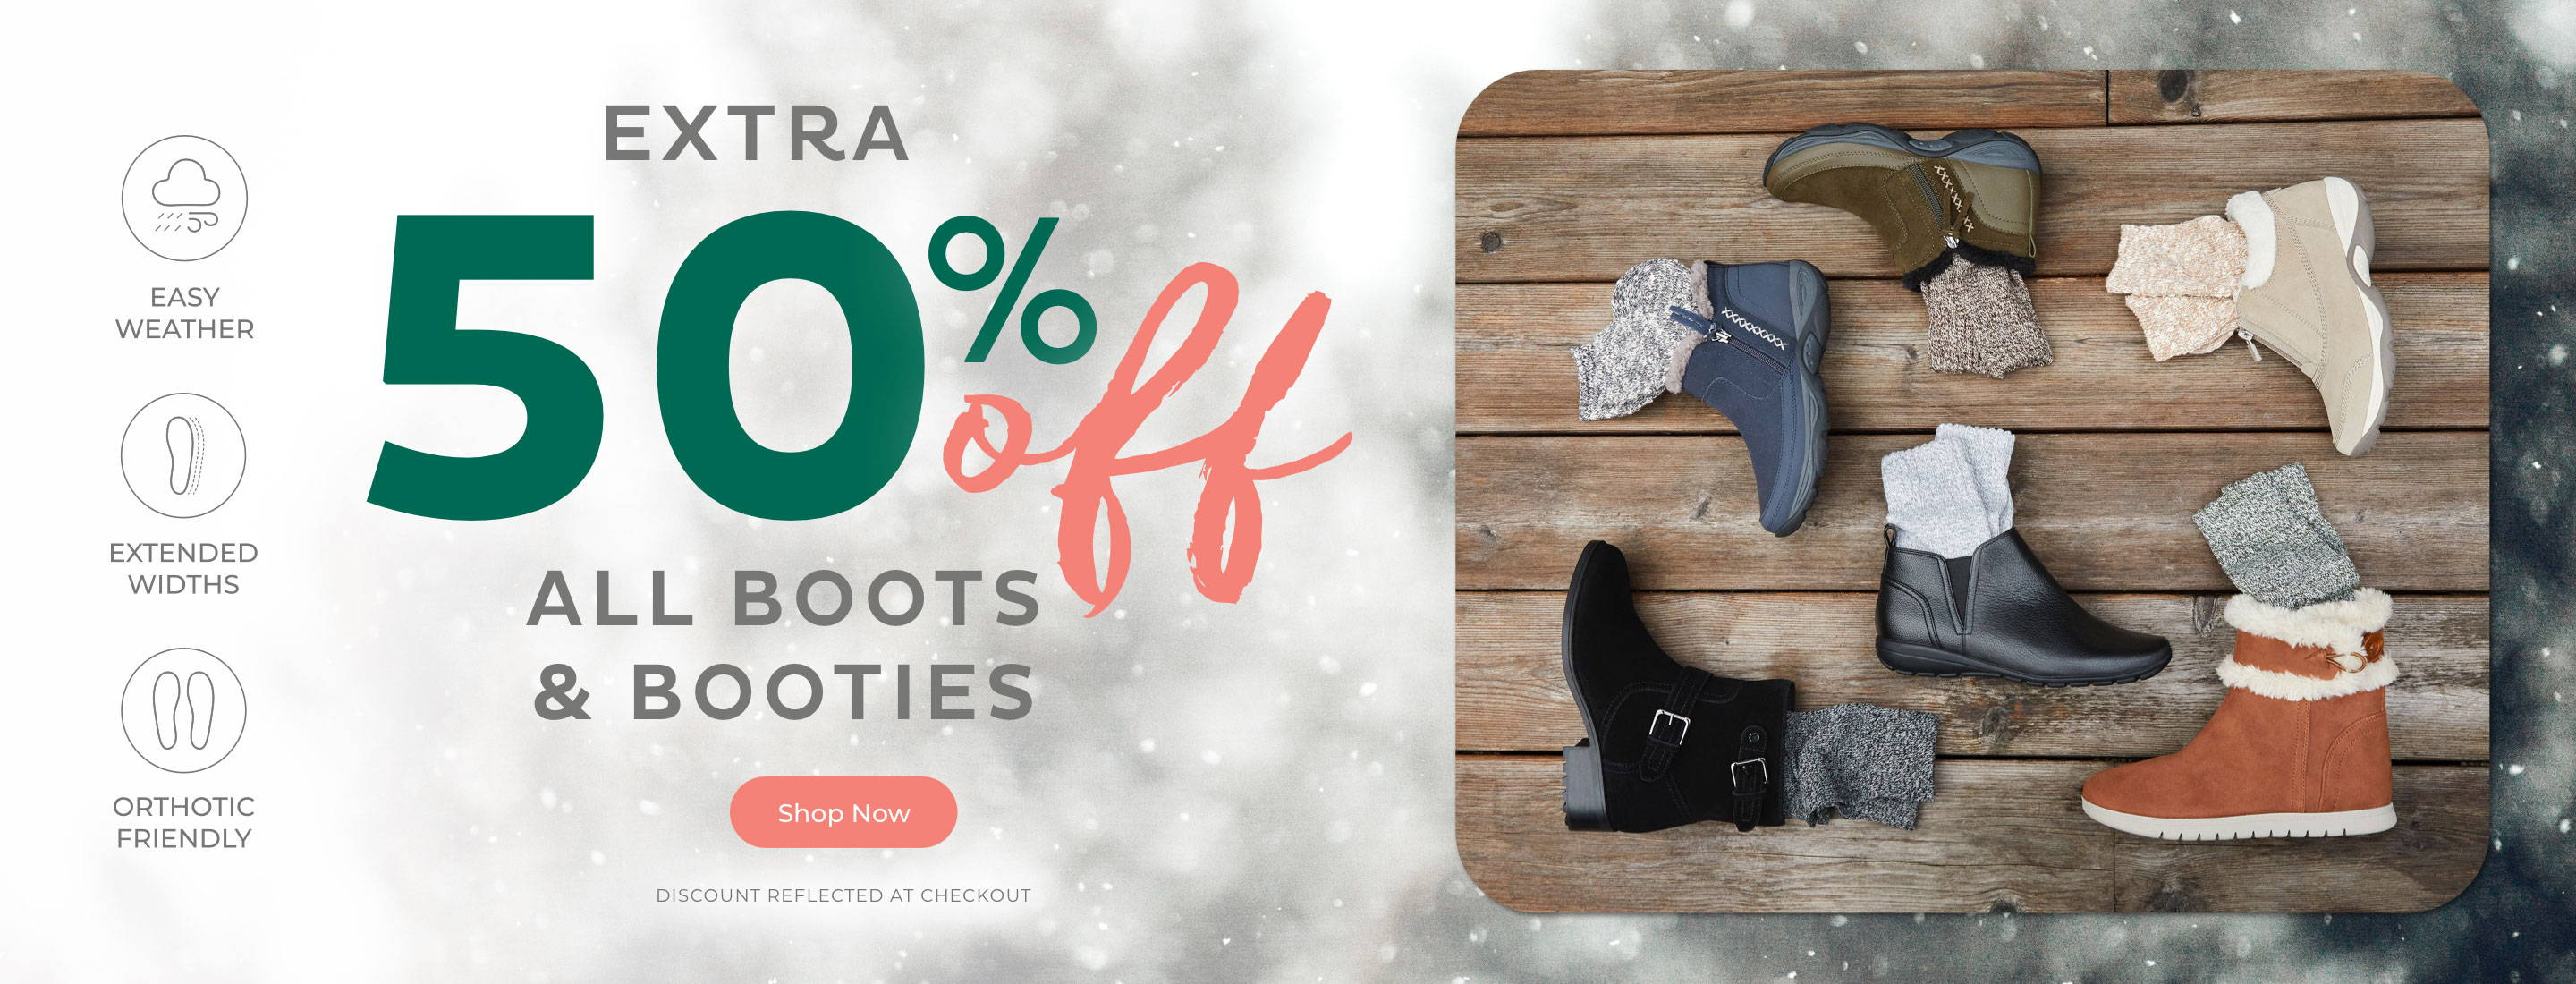 Extra 50% Off All Boots & Booties